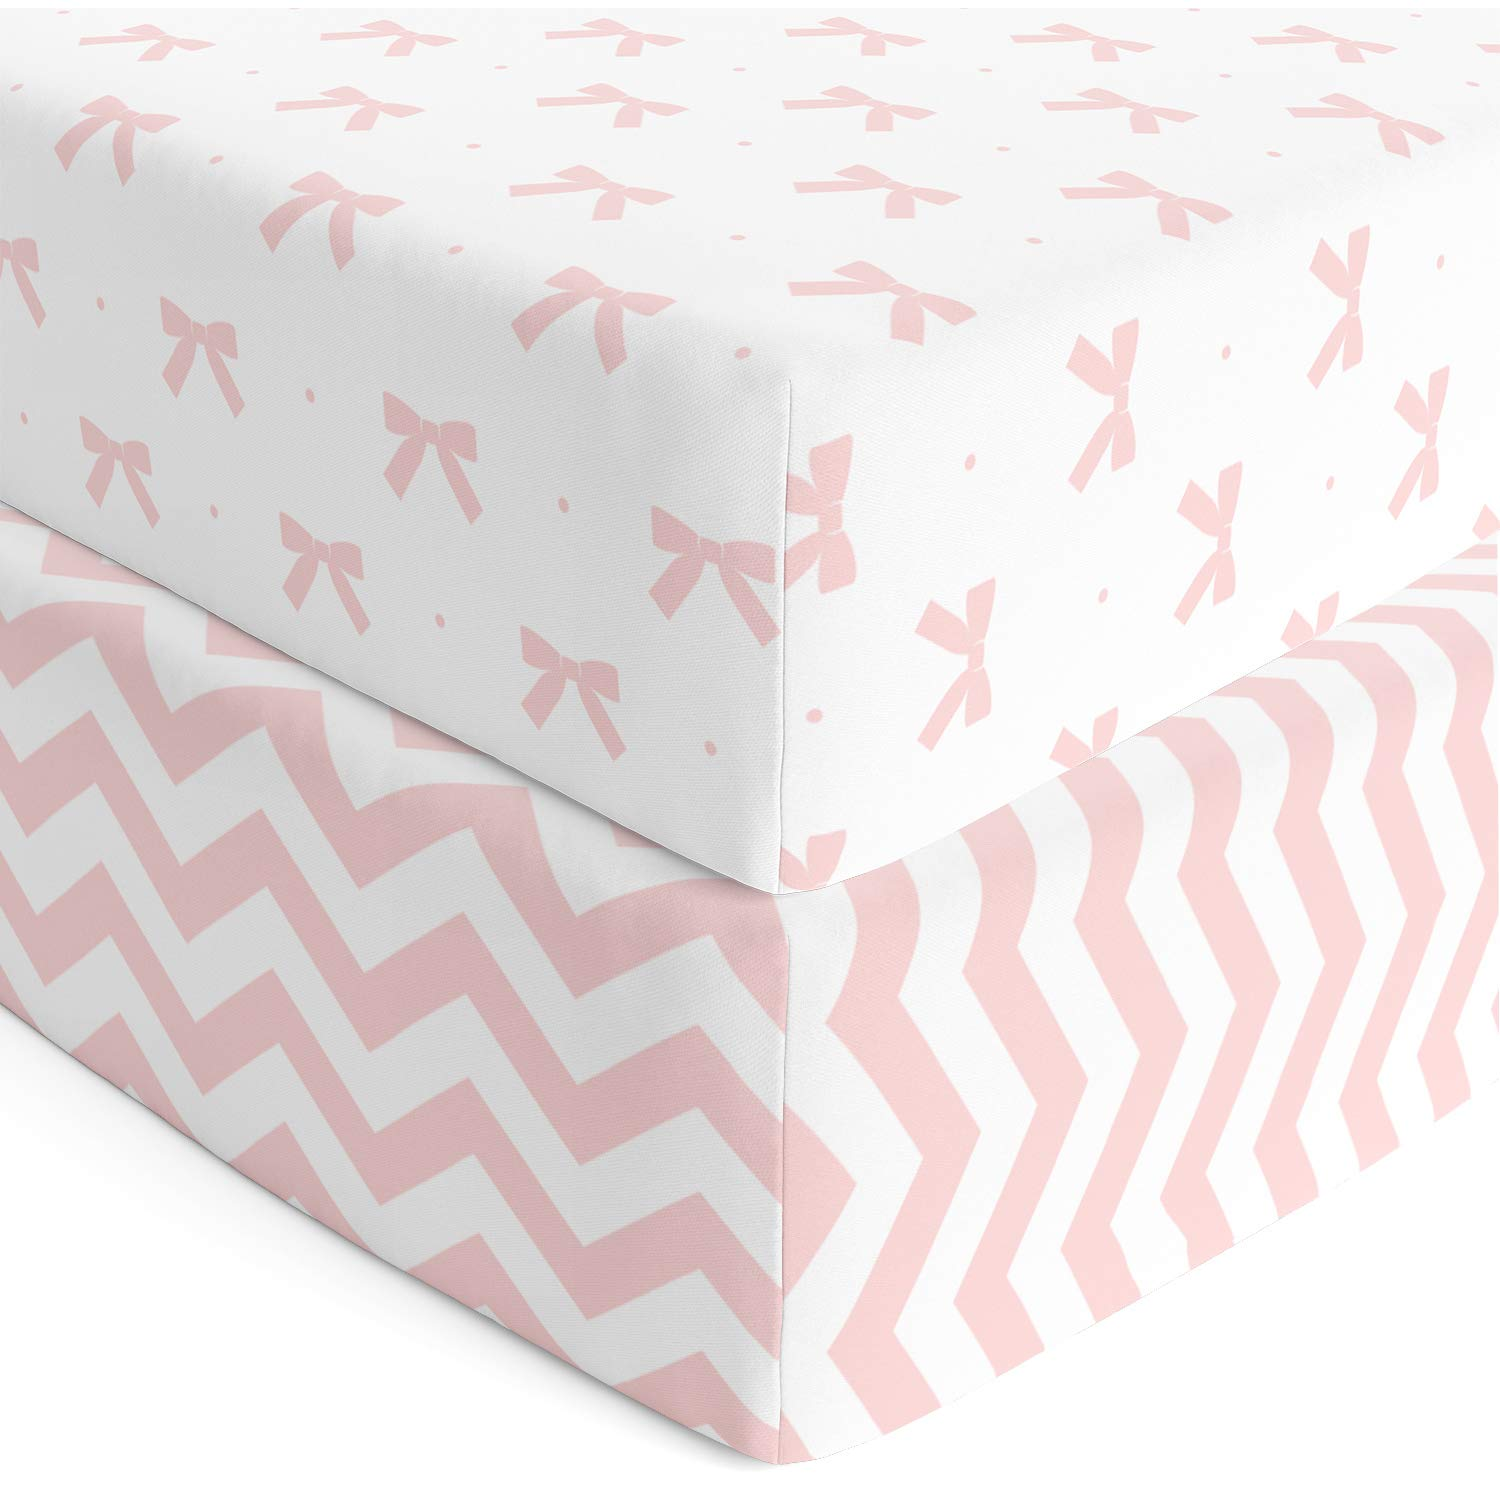 Cuddly Cubs Premium Jersey Crib Sheets, Gentle on Baby Skin and Extra Soft for a Sound Sleep! Fitted and Stretchy, NO Struggle to Get on the Mattress. Cute Chevron and Bow Pattern in Pink and Gray by Cuddly Cubs